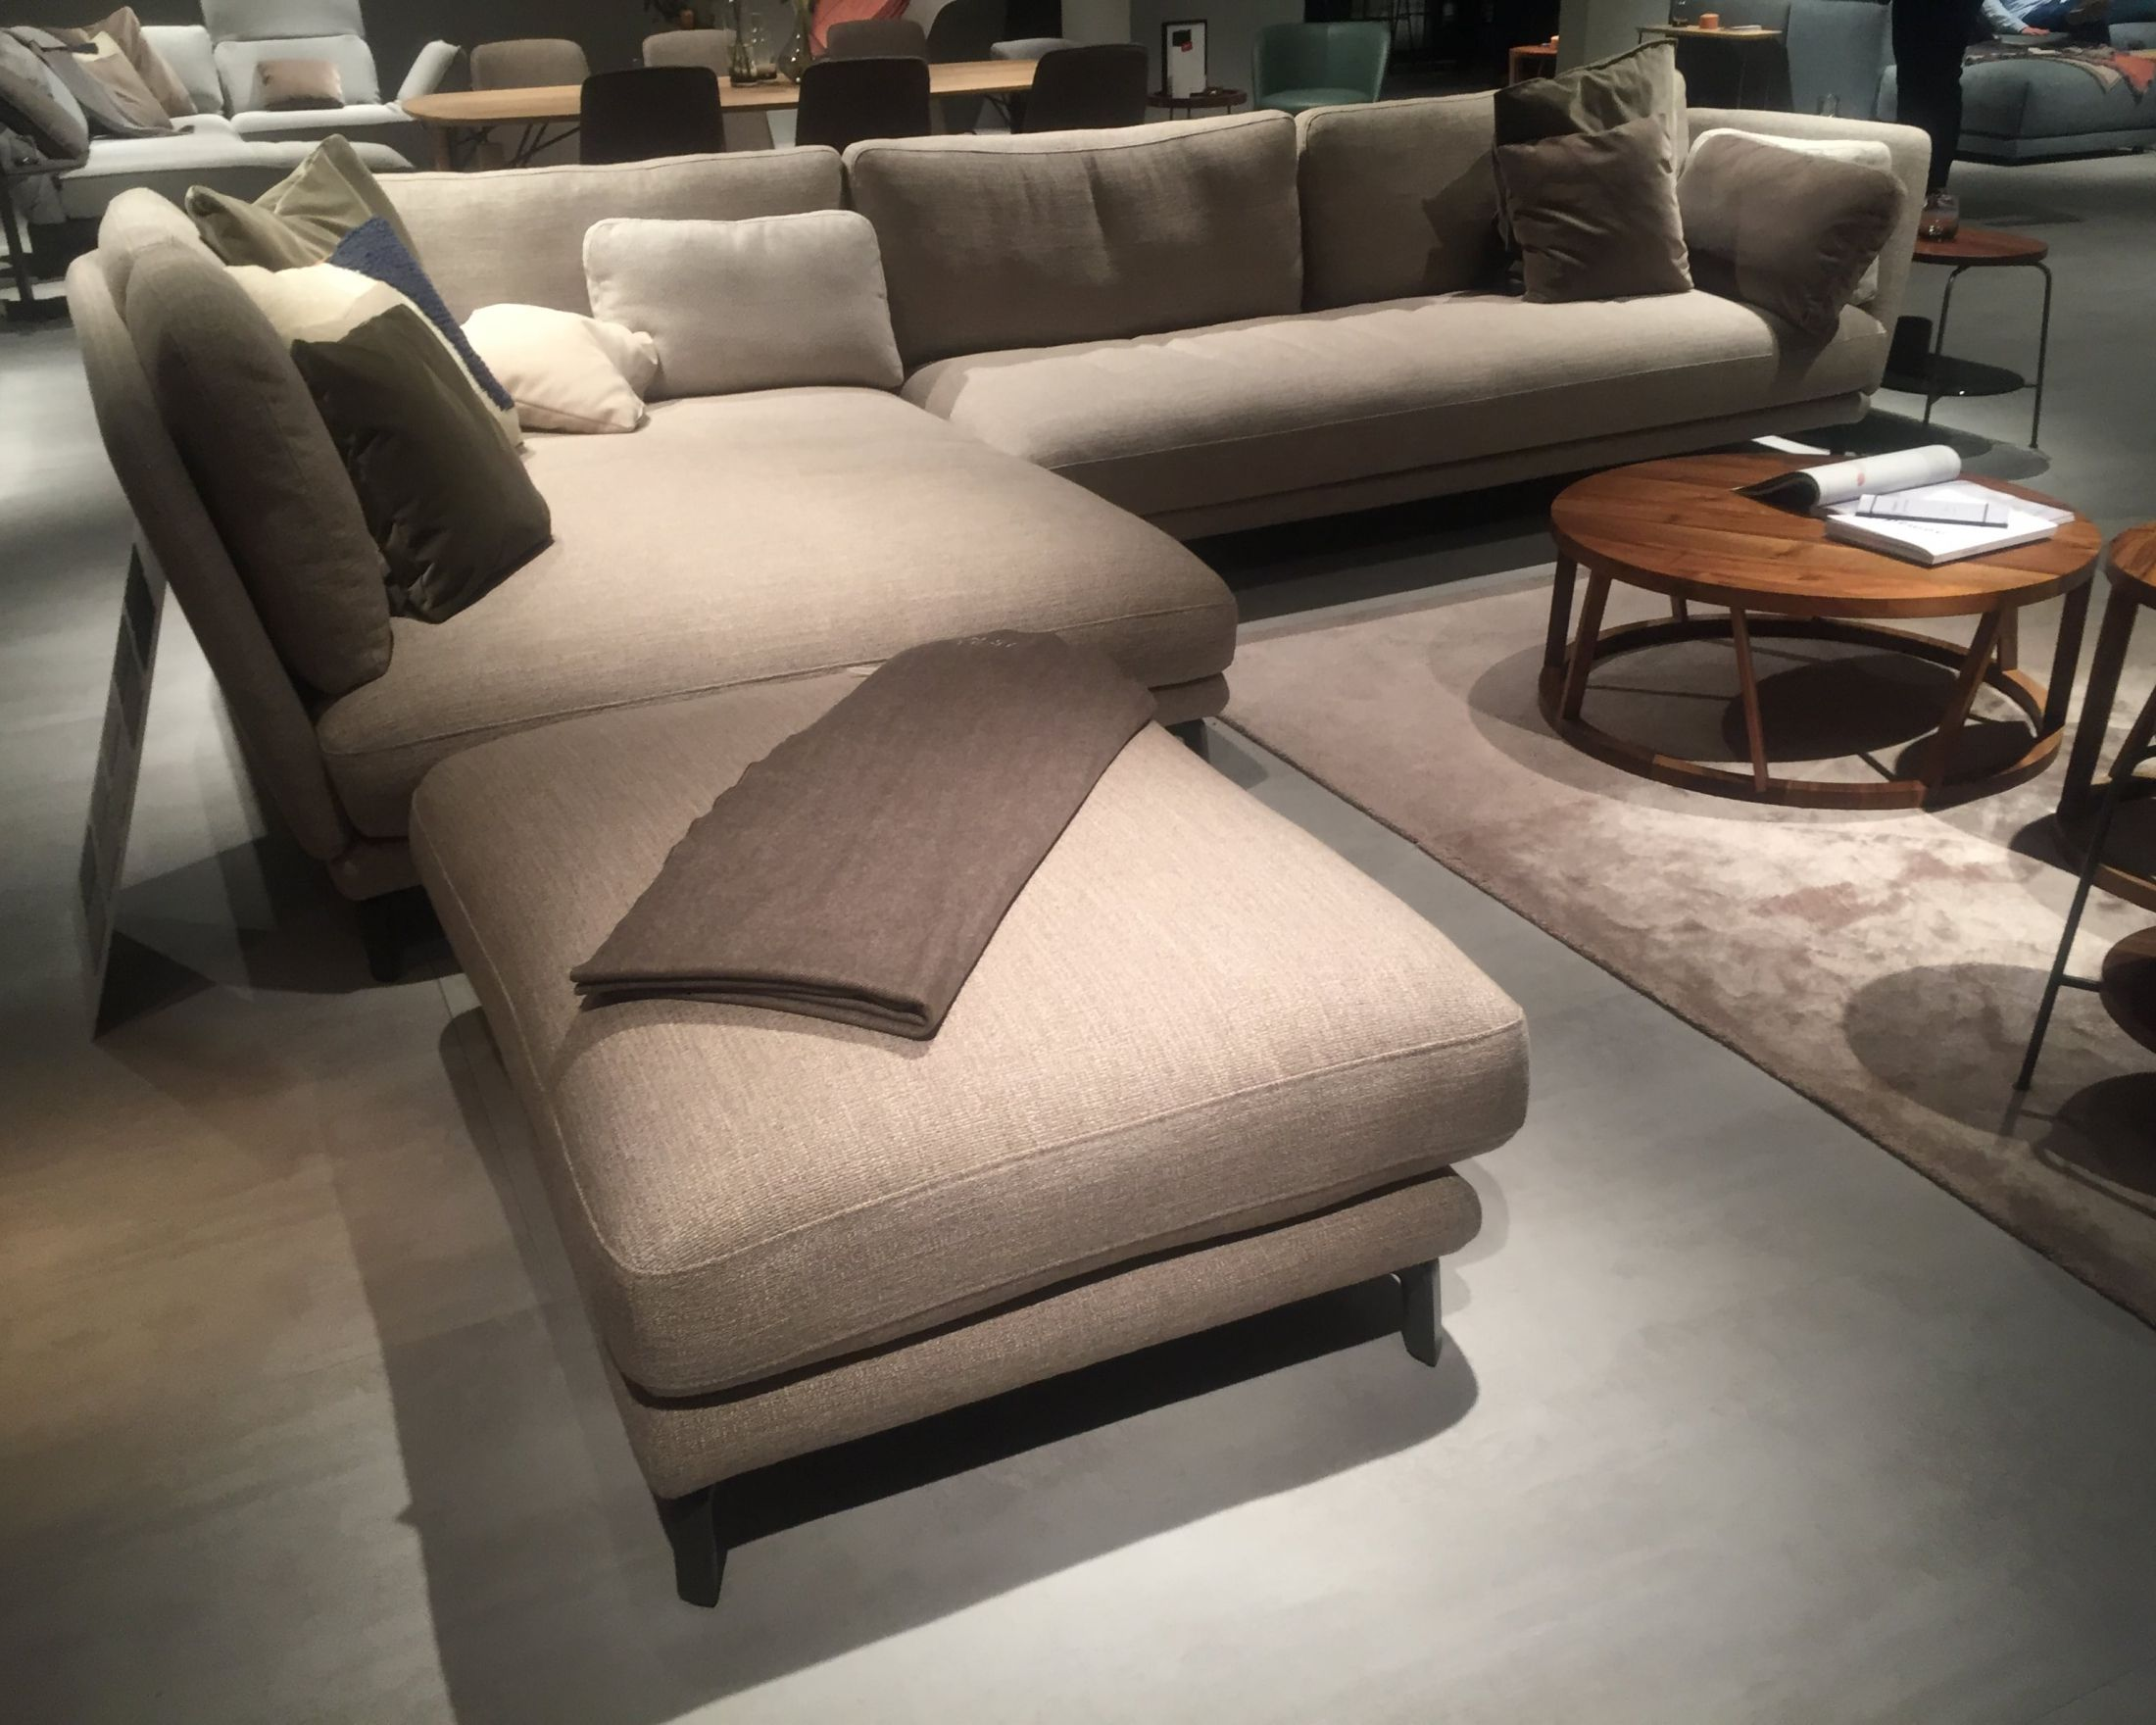 Rolf benz outlet benz sofa related post rolf benz sofa outlet